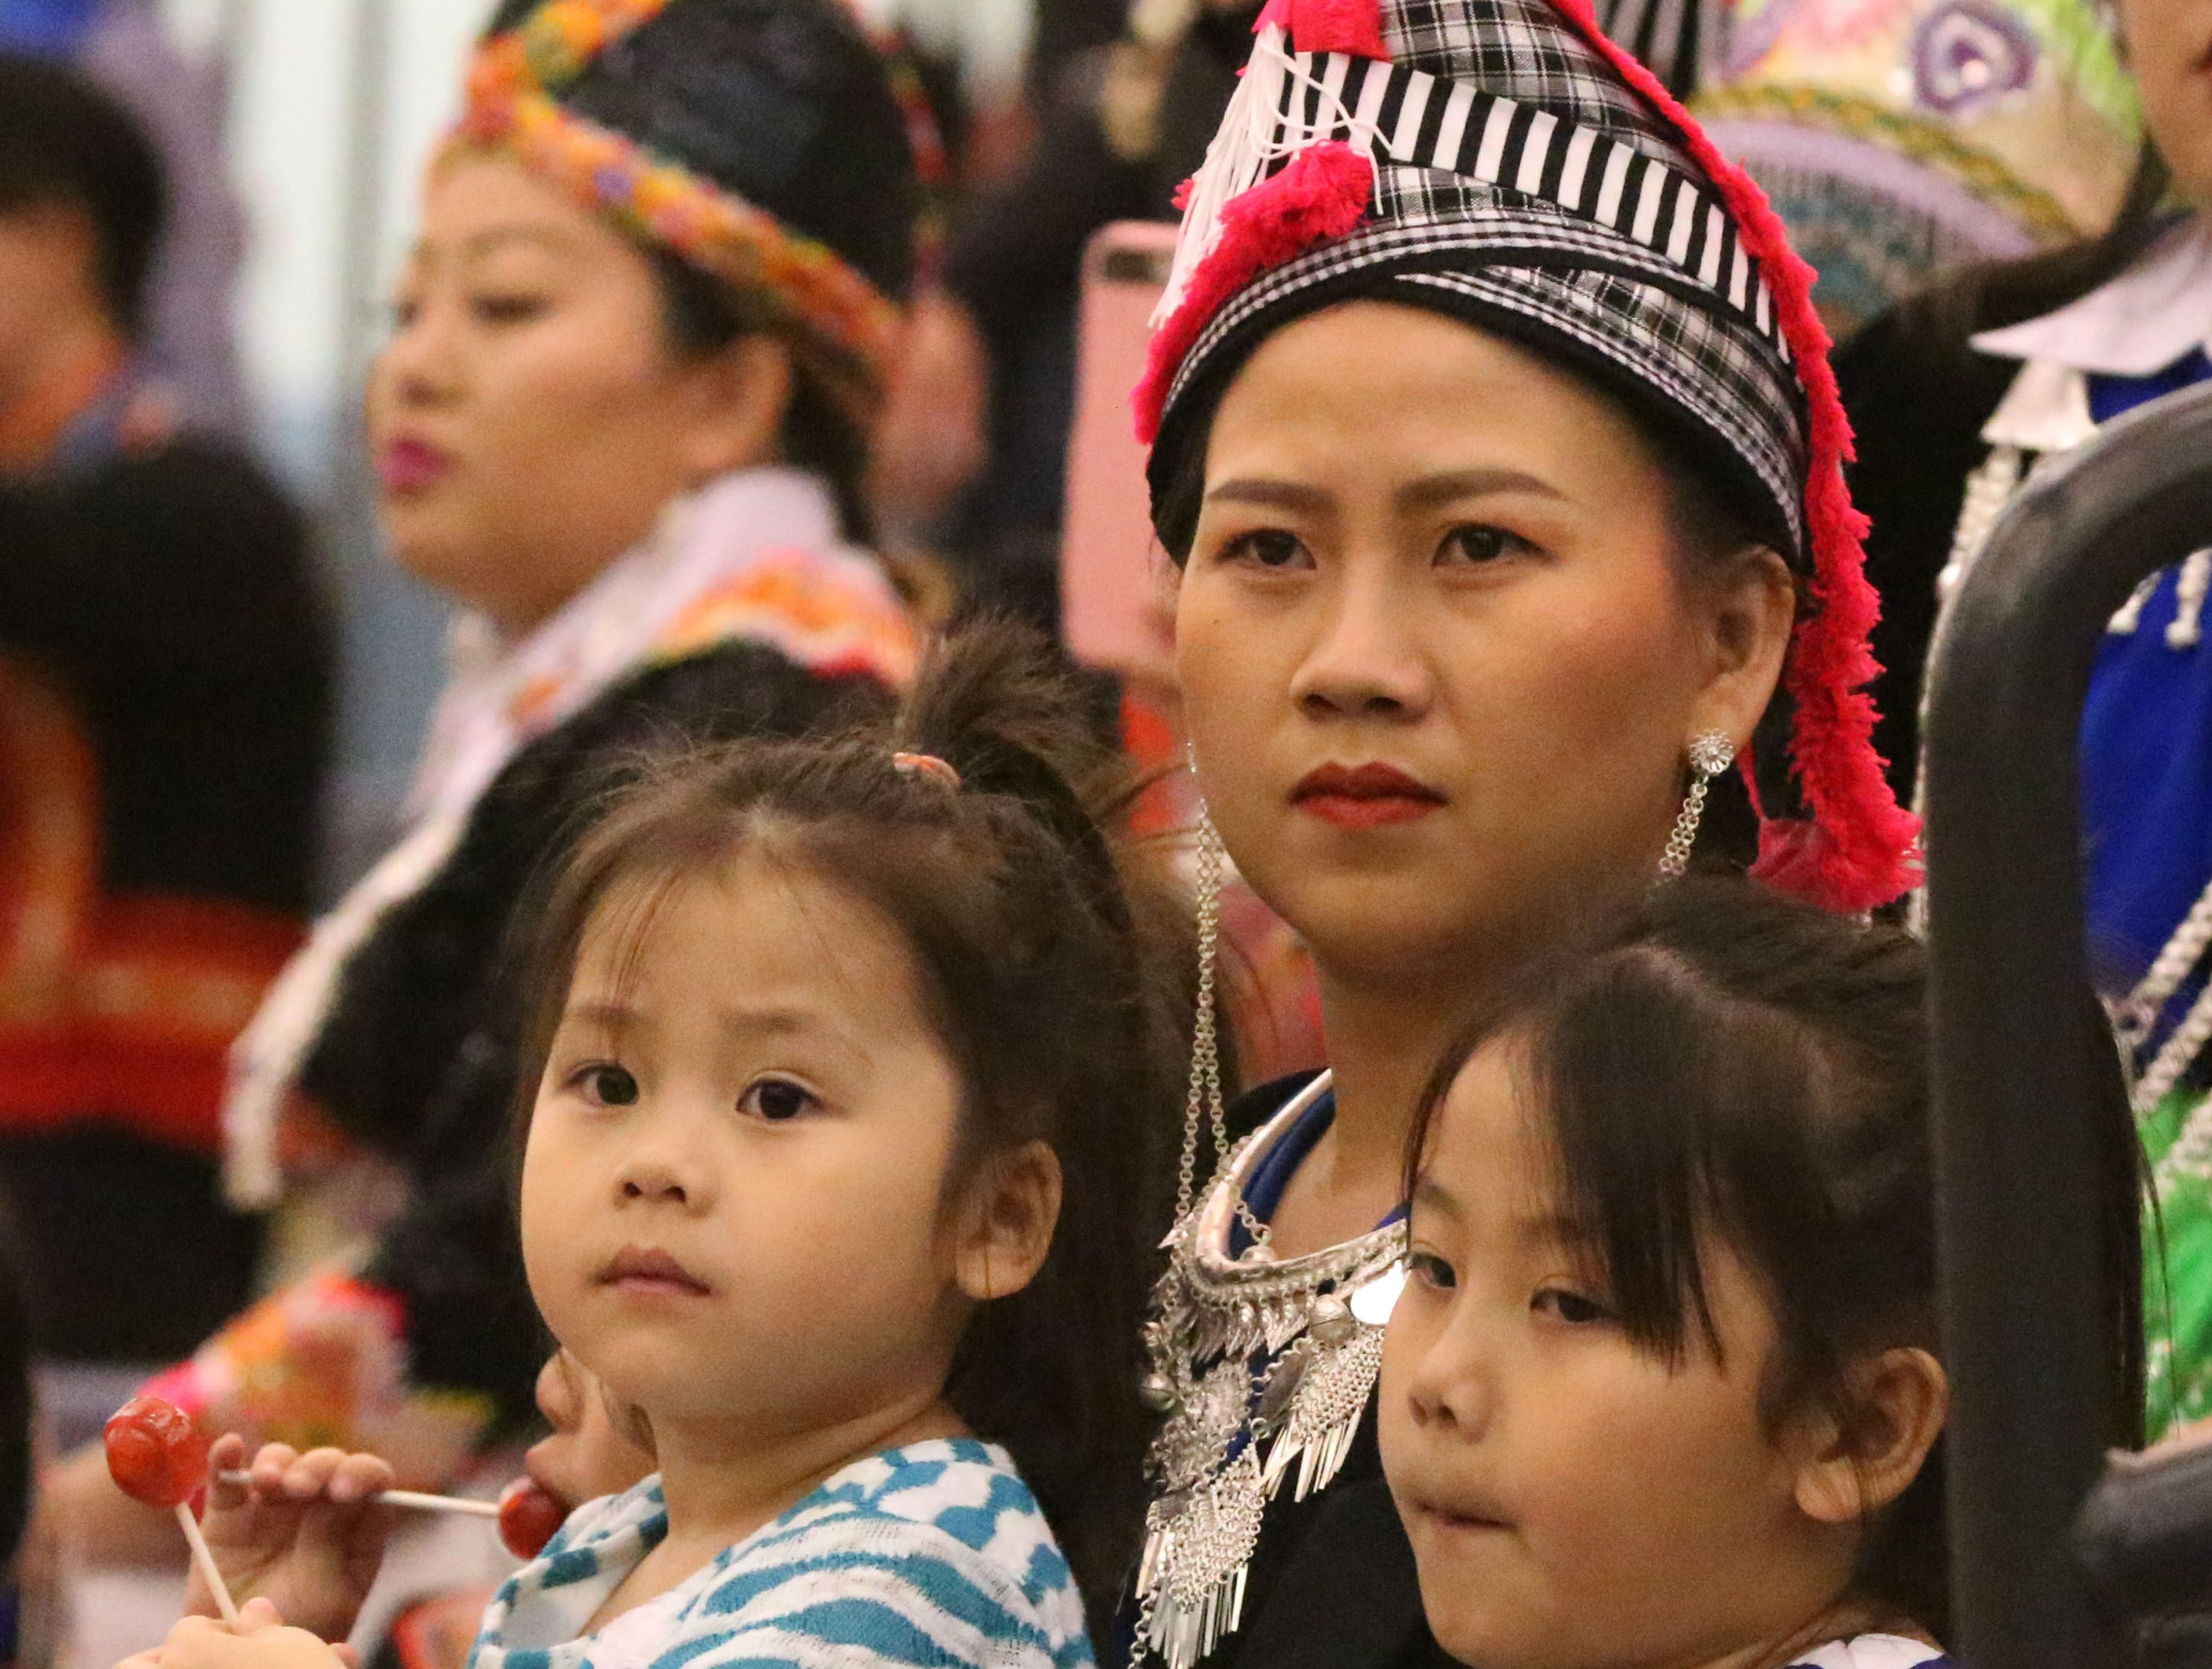 A family watches dancing during the Hmong New Year event held at Sheboygan North High School, Saturday, November 24, 2018, in Sheboygan, Wis.